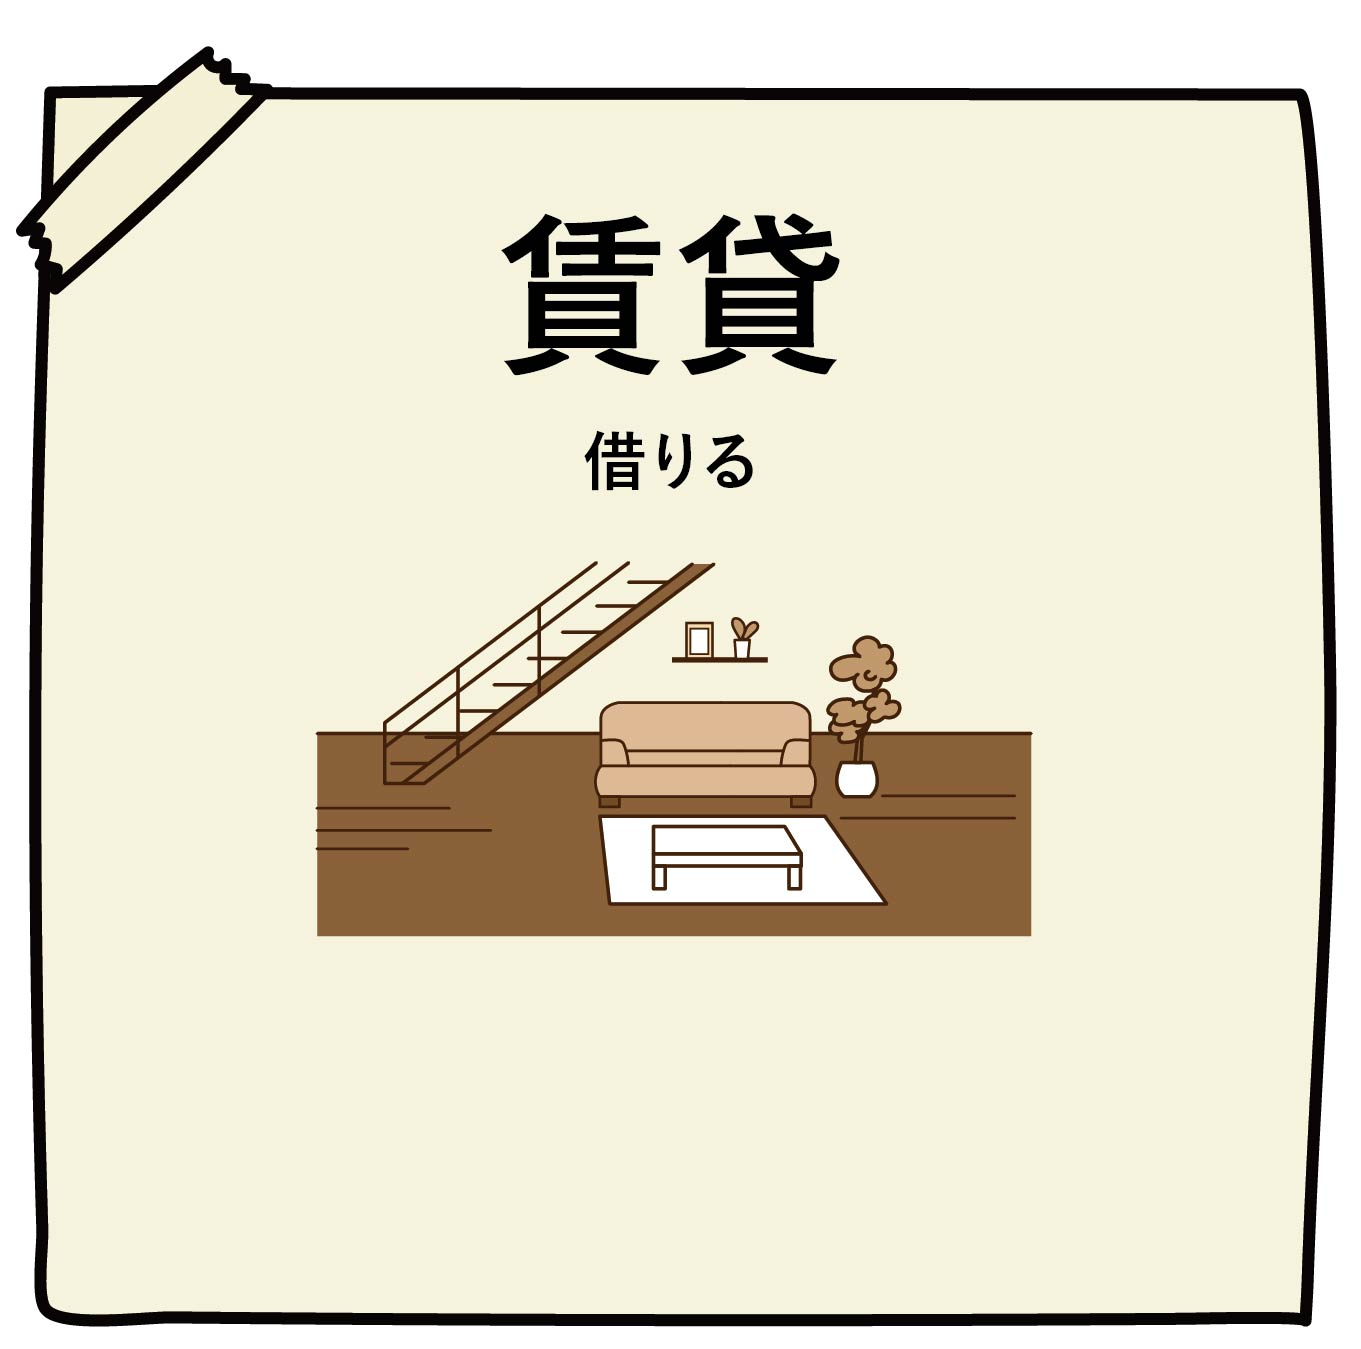 ABOUT_賃貸1アイコン